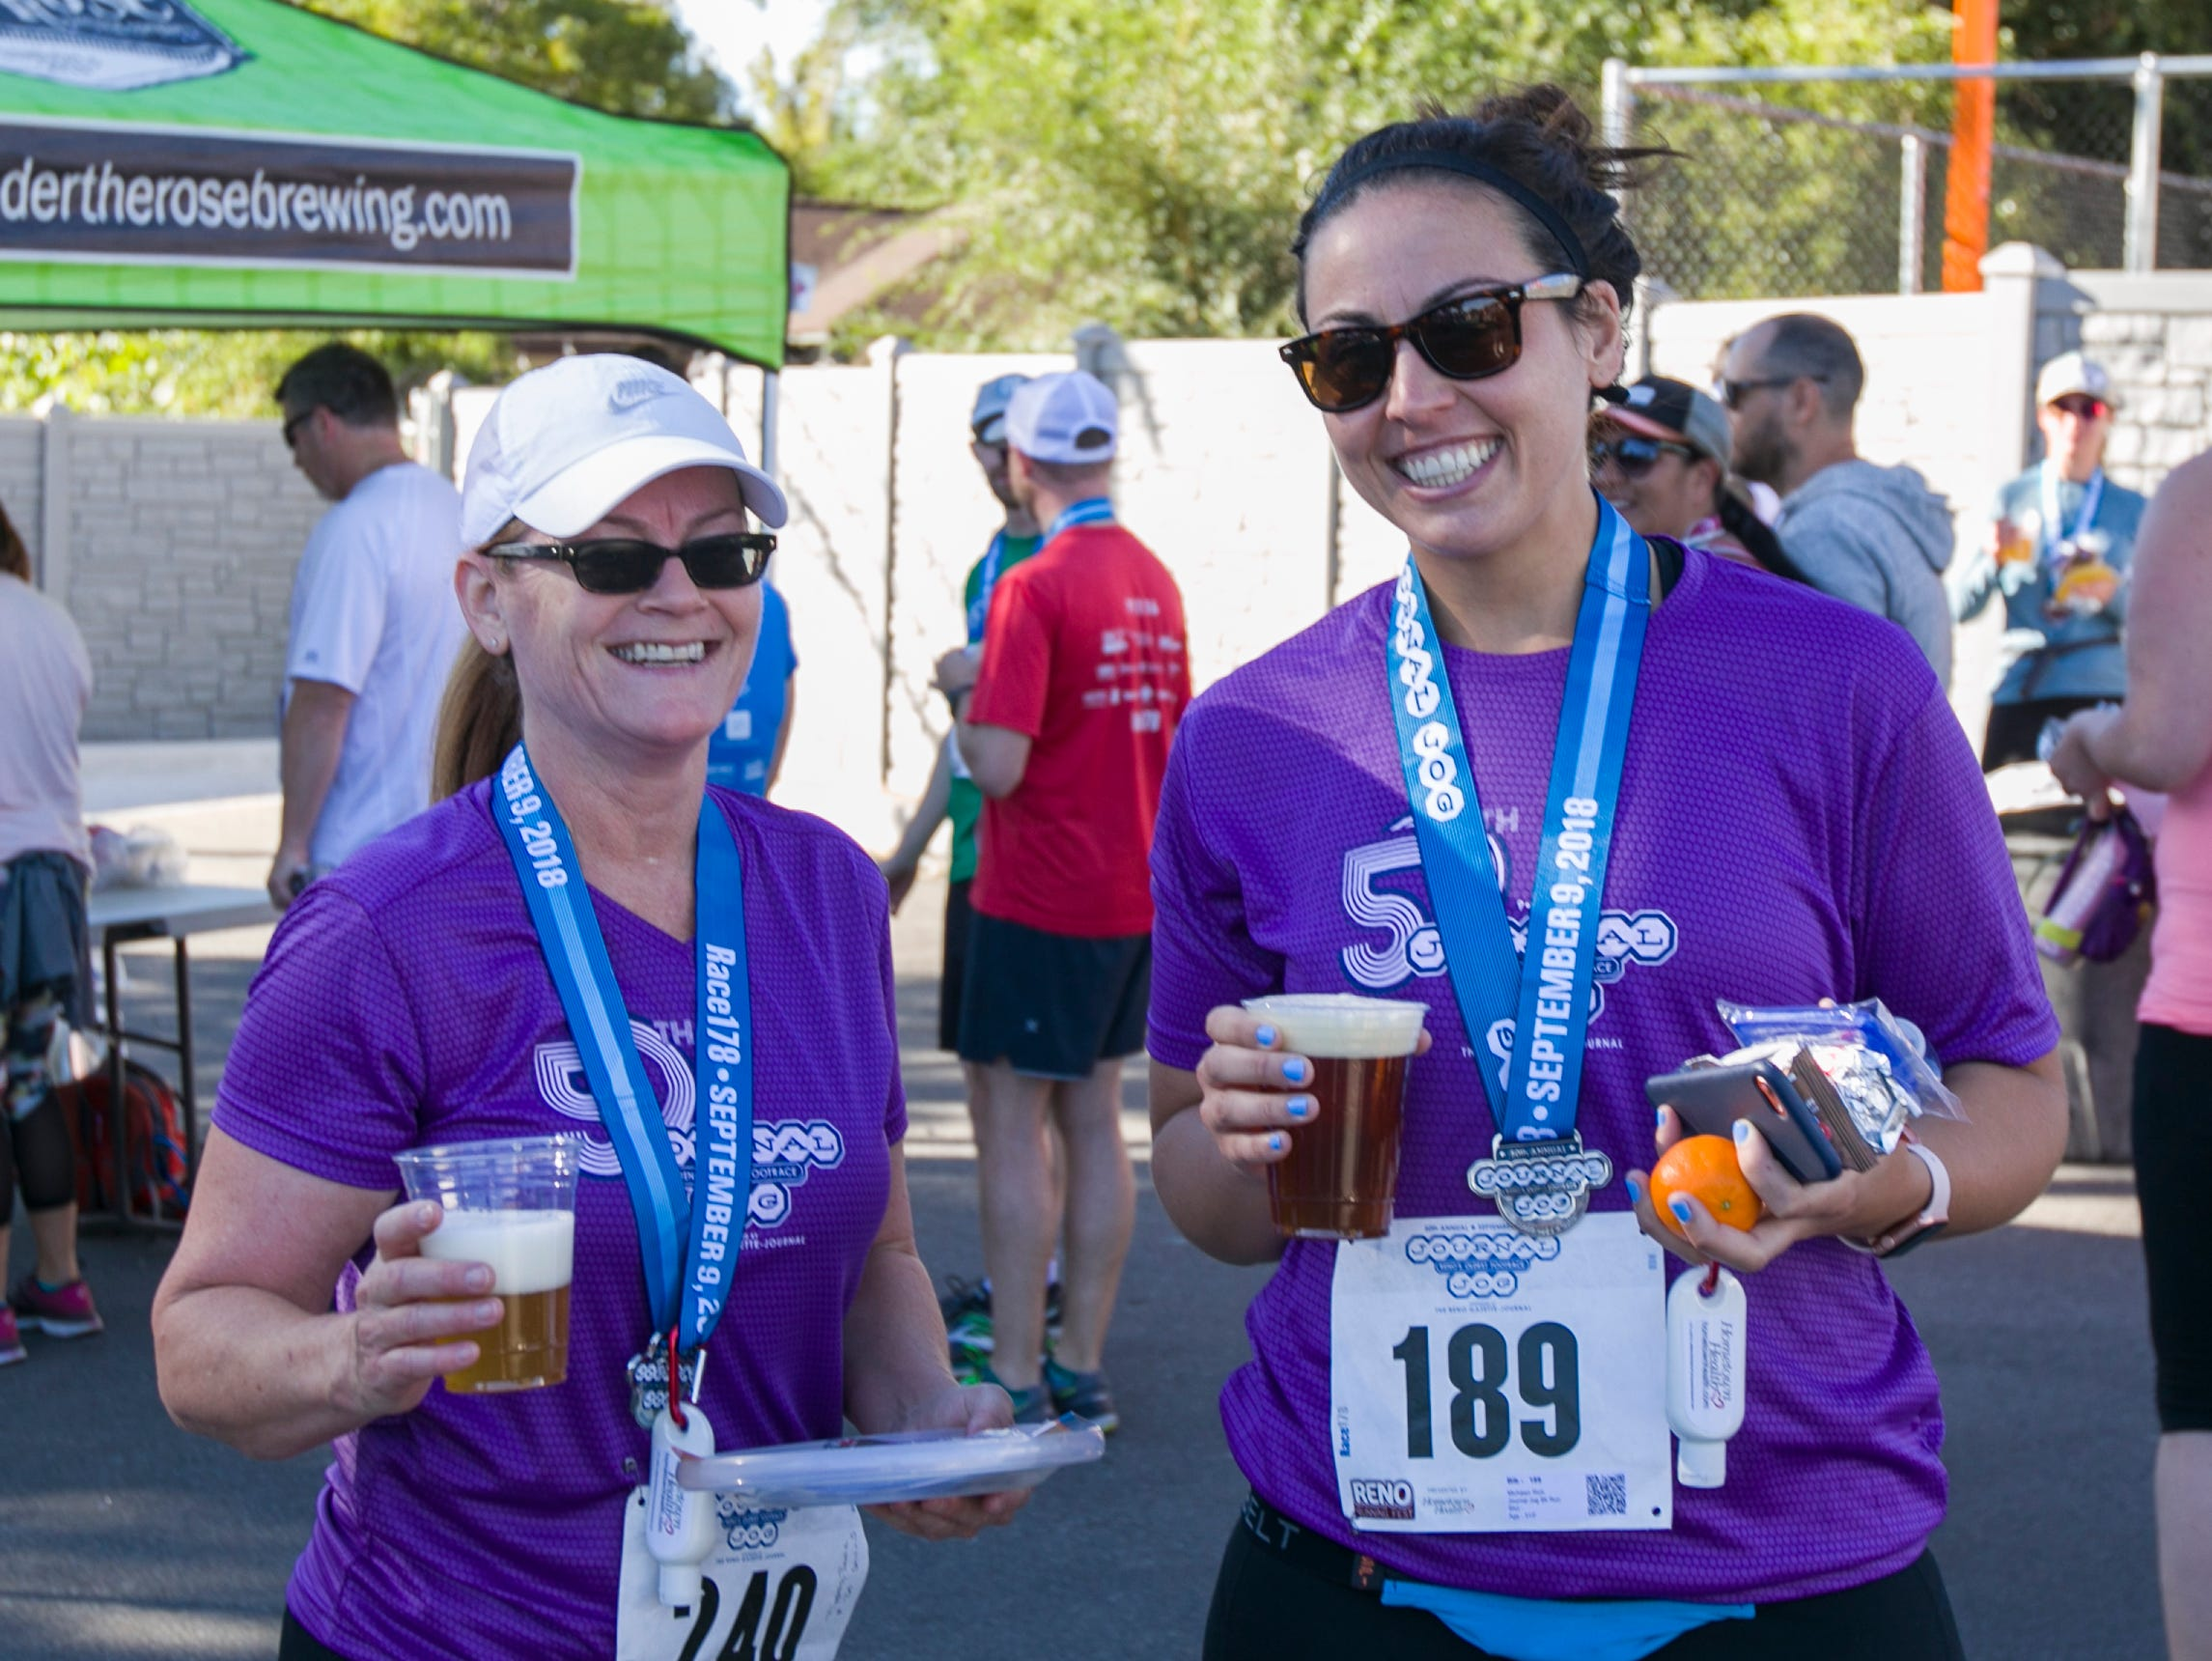 Tamie and Michawn during the 50th Annual Journal Jog in Reno, Nevada on Sunday, September 9, 2018.